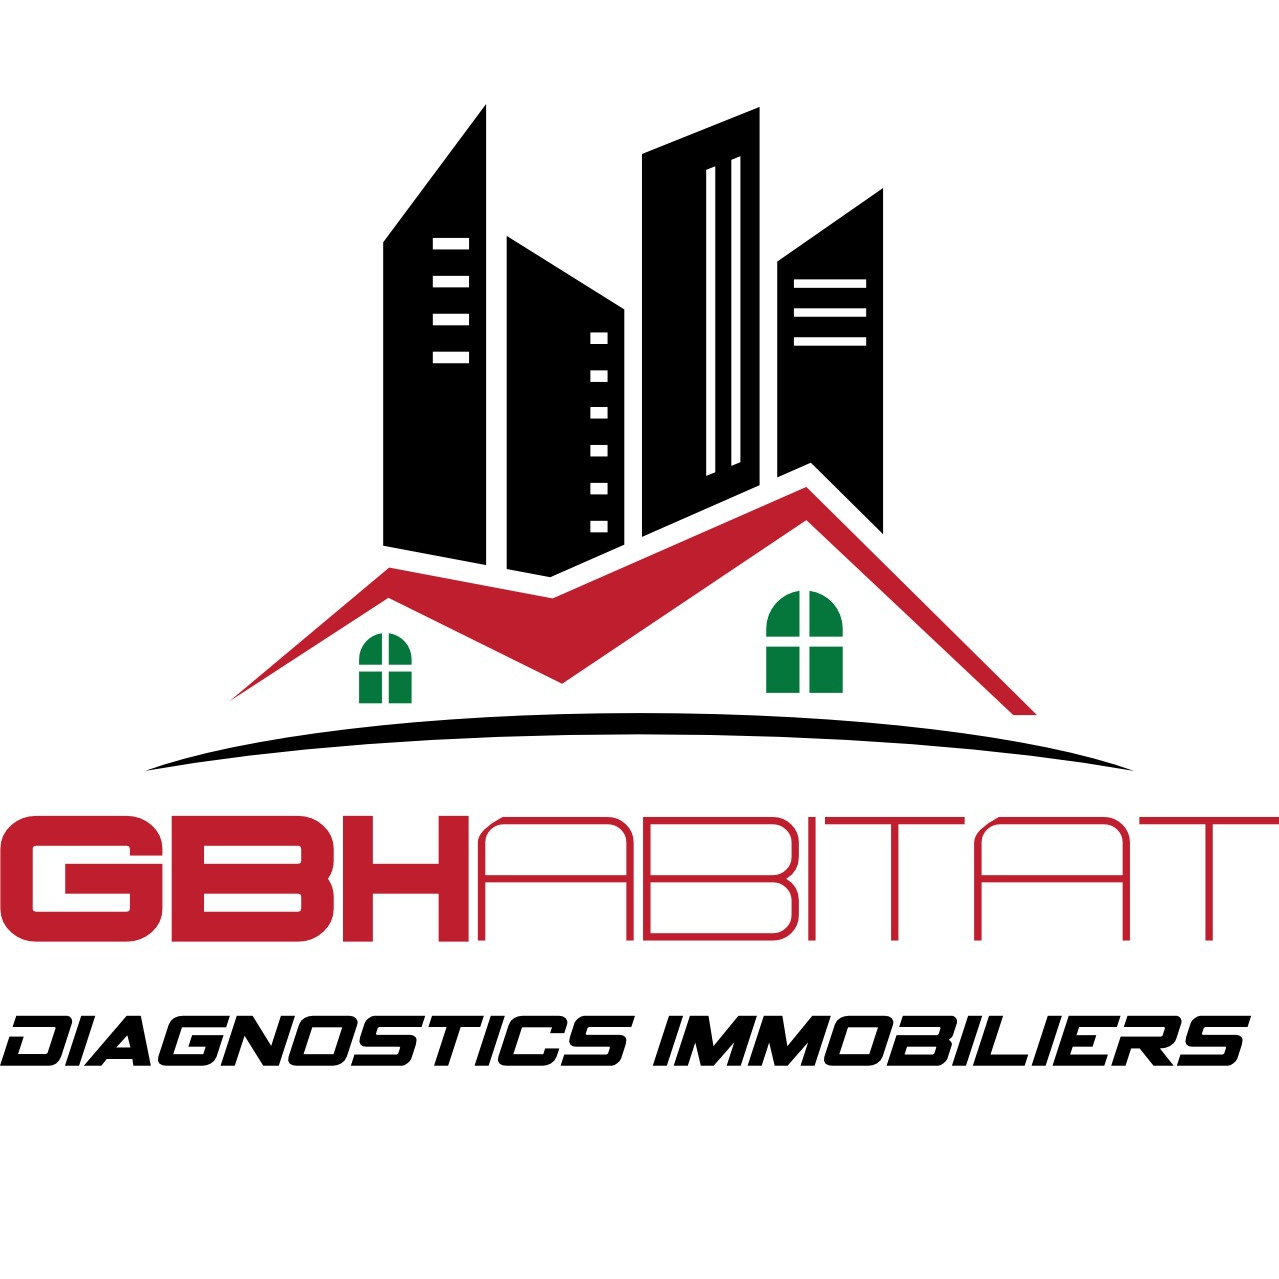 diagnostic immobilier 82